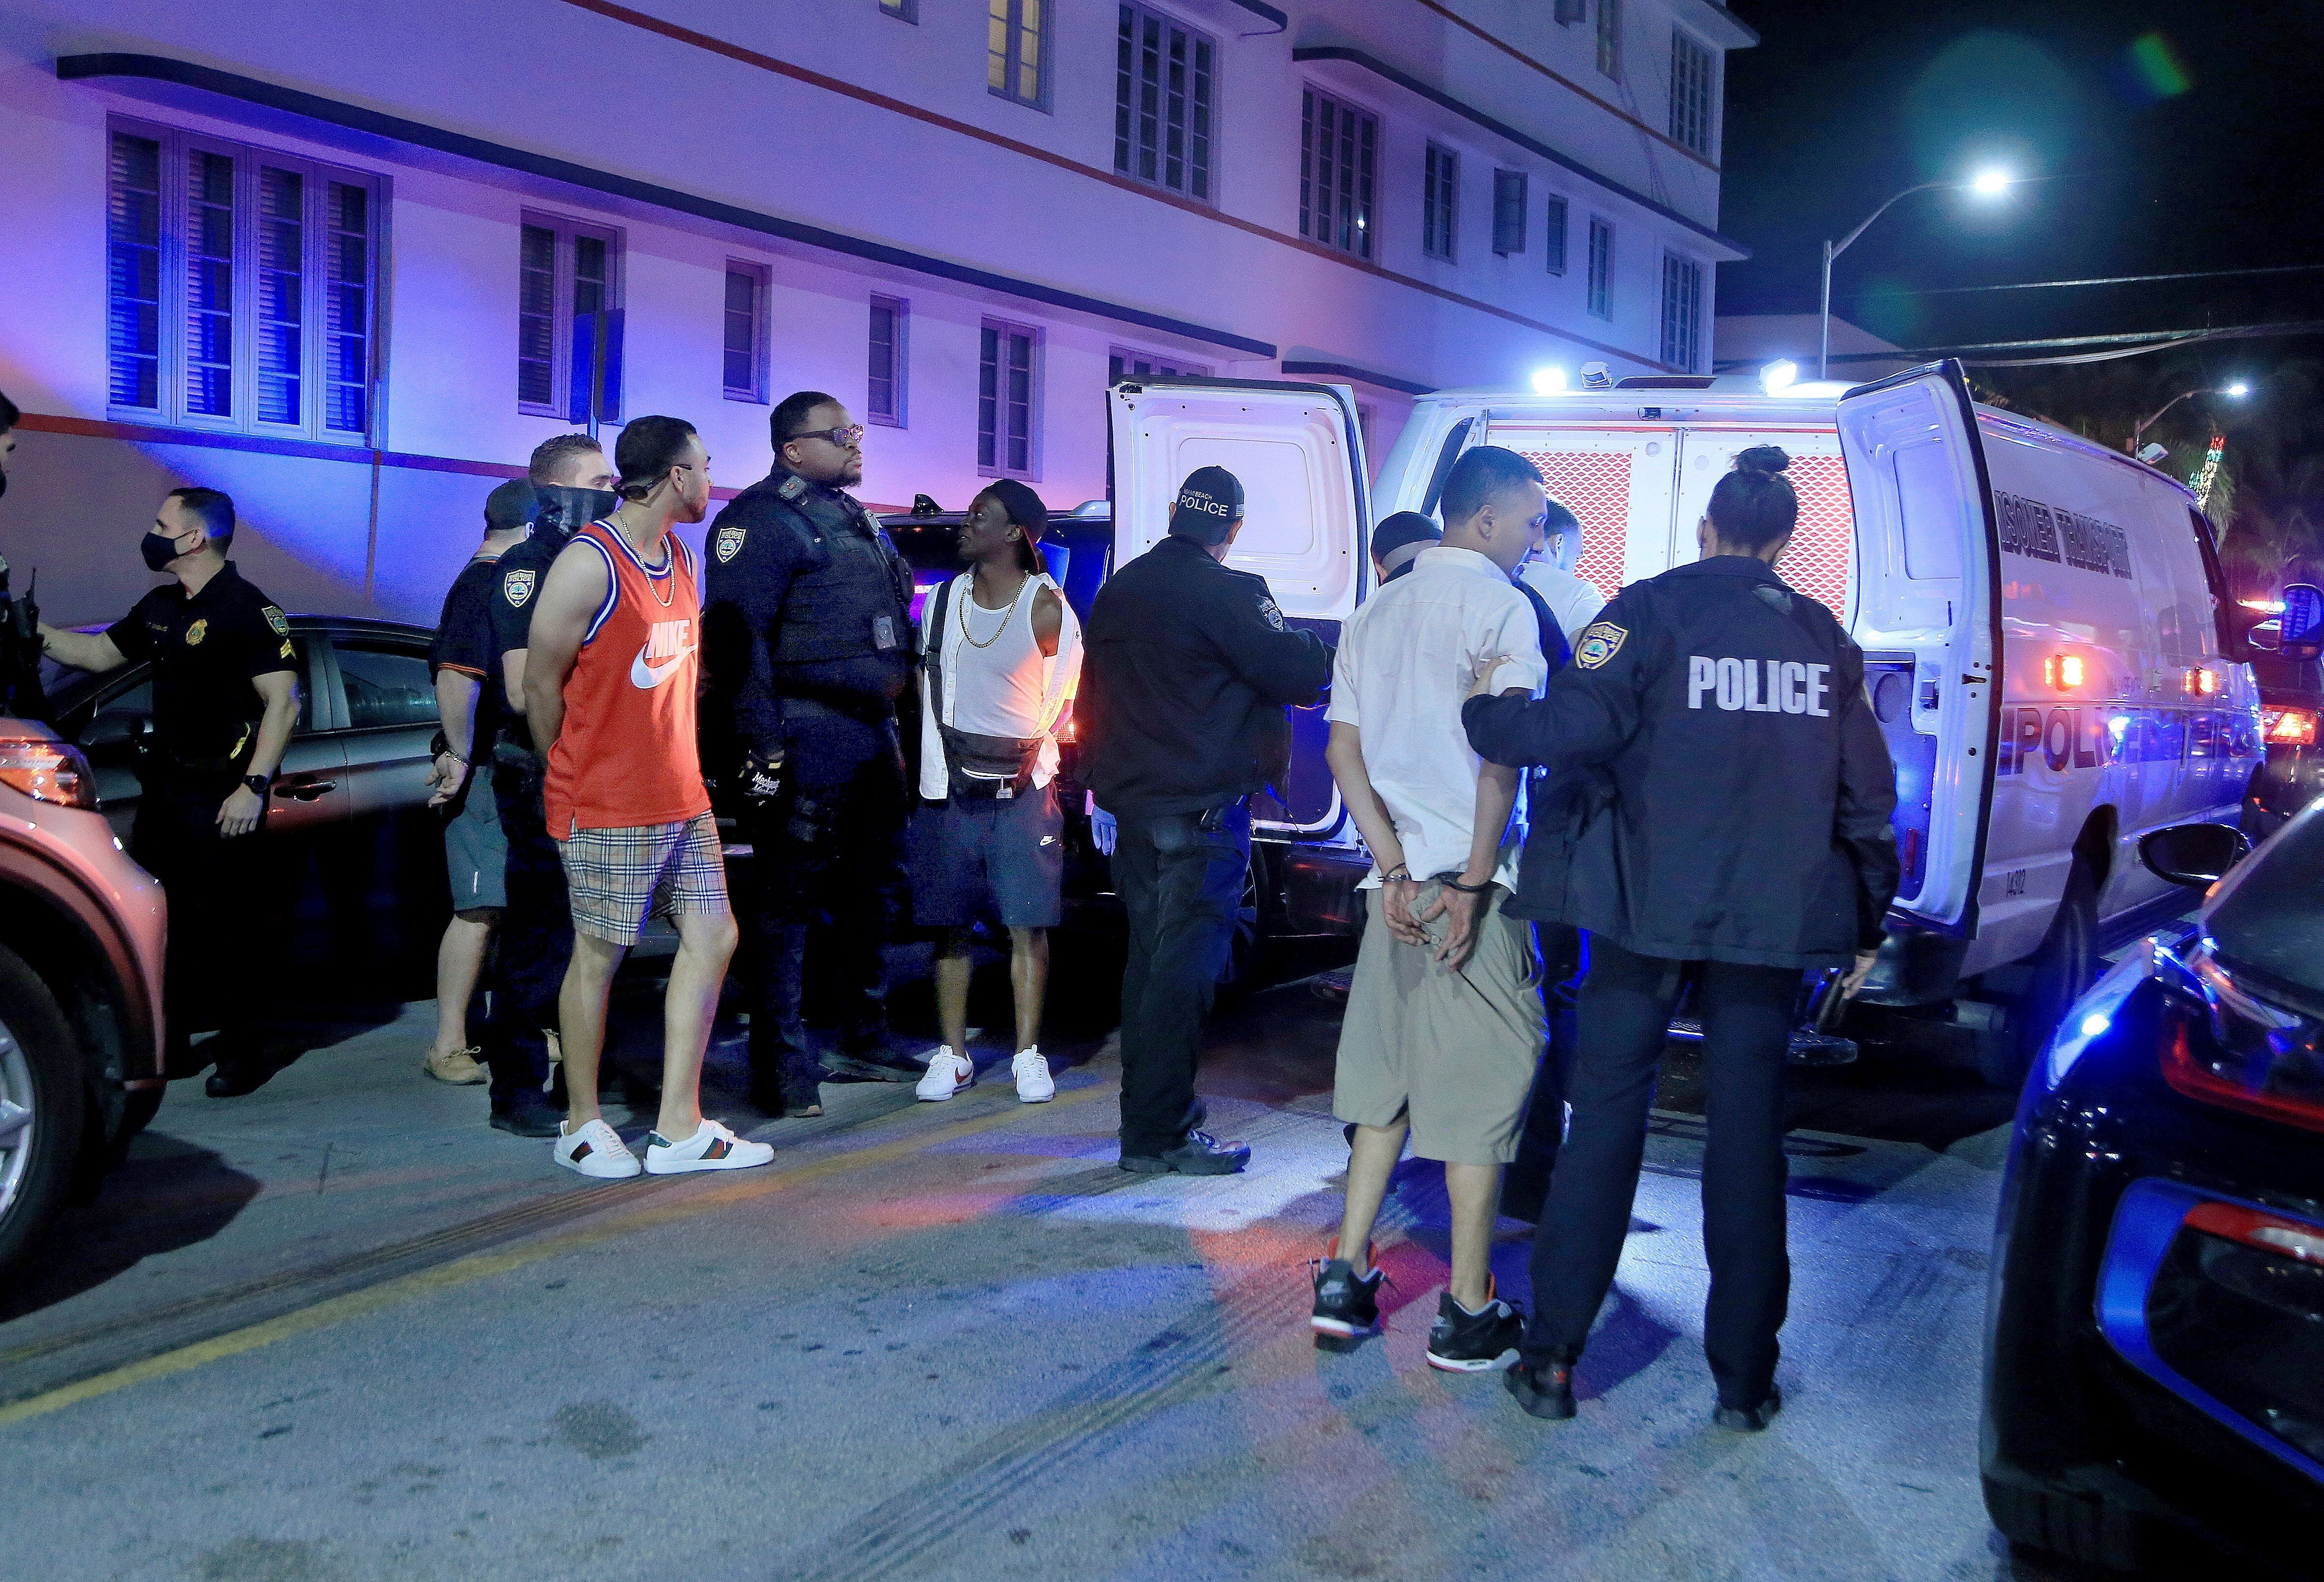 Miami sets earlier curfew after spring break crowds, fights 2